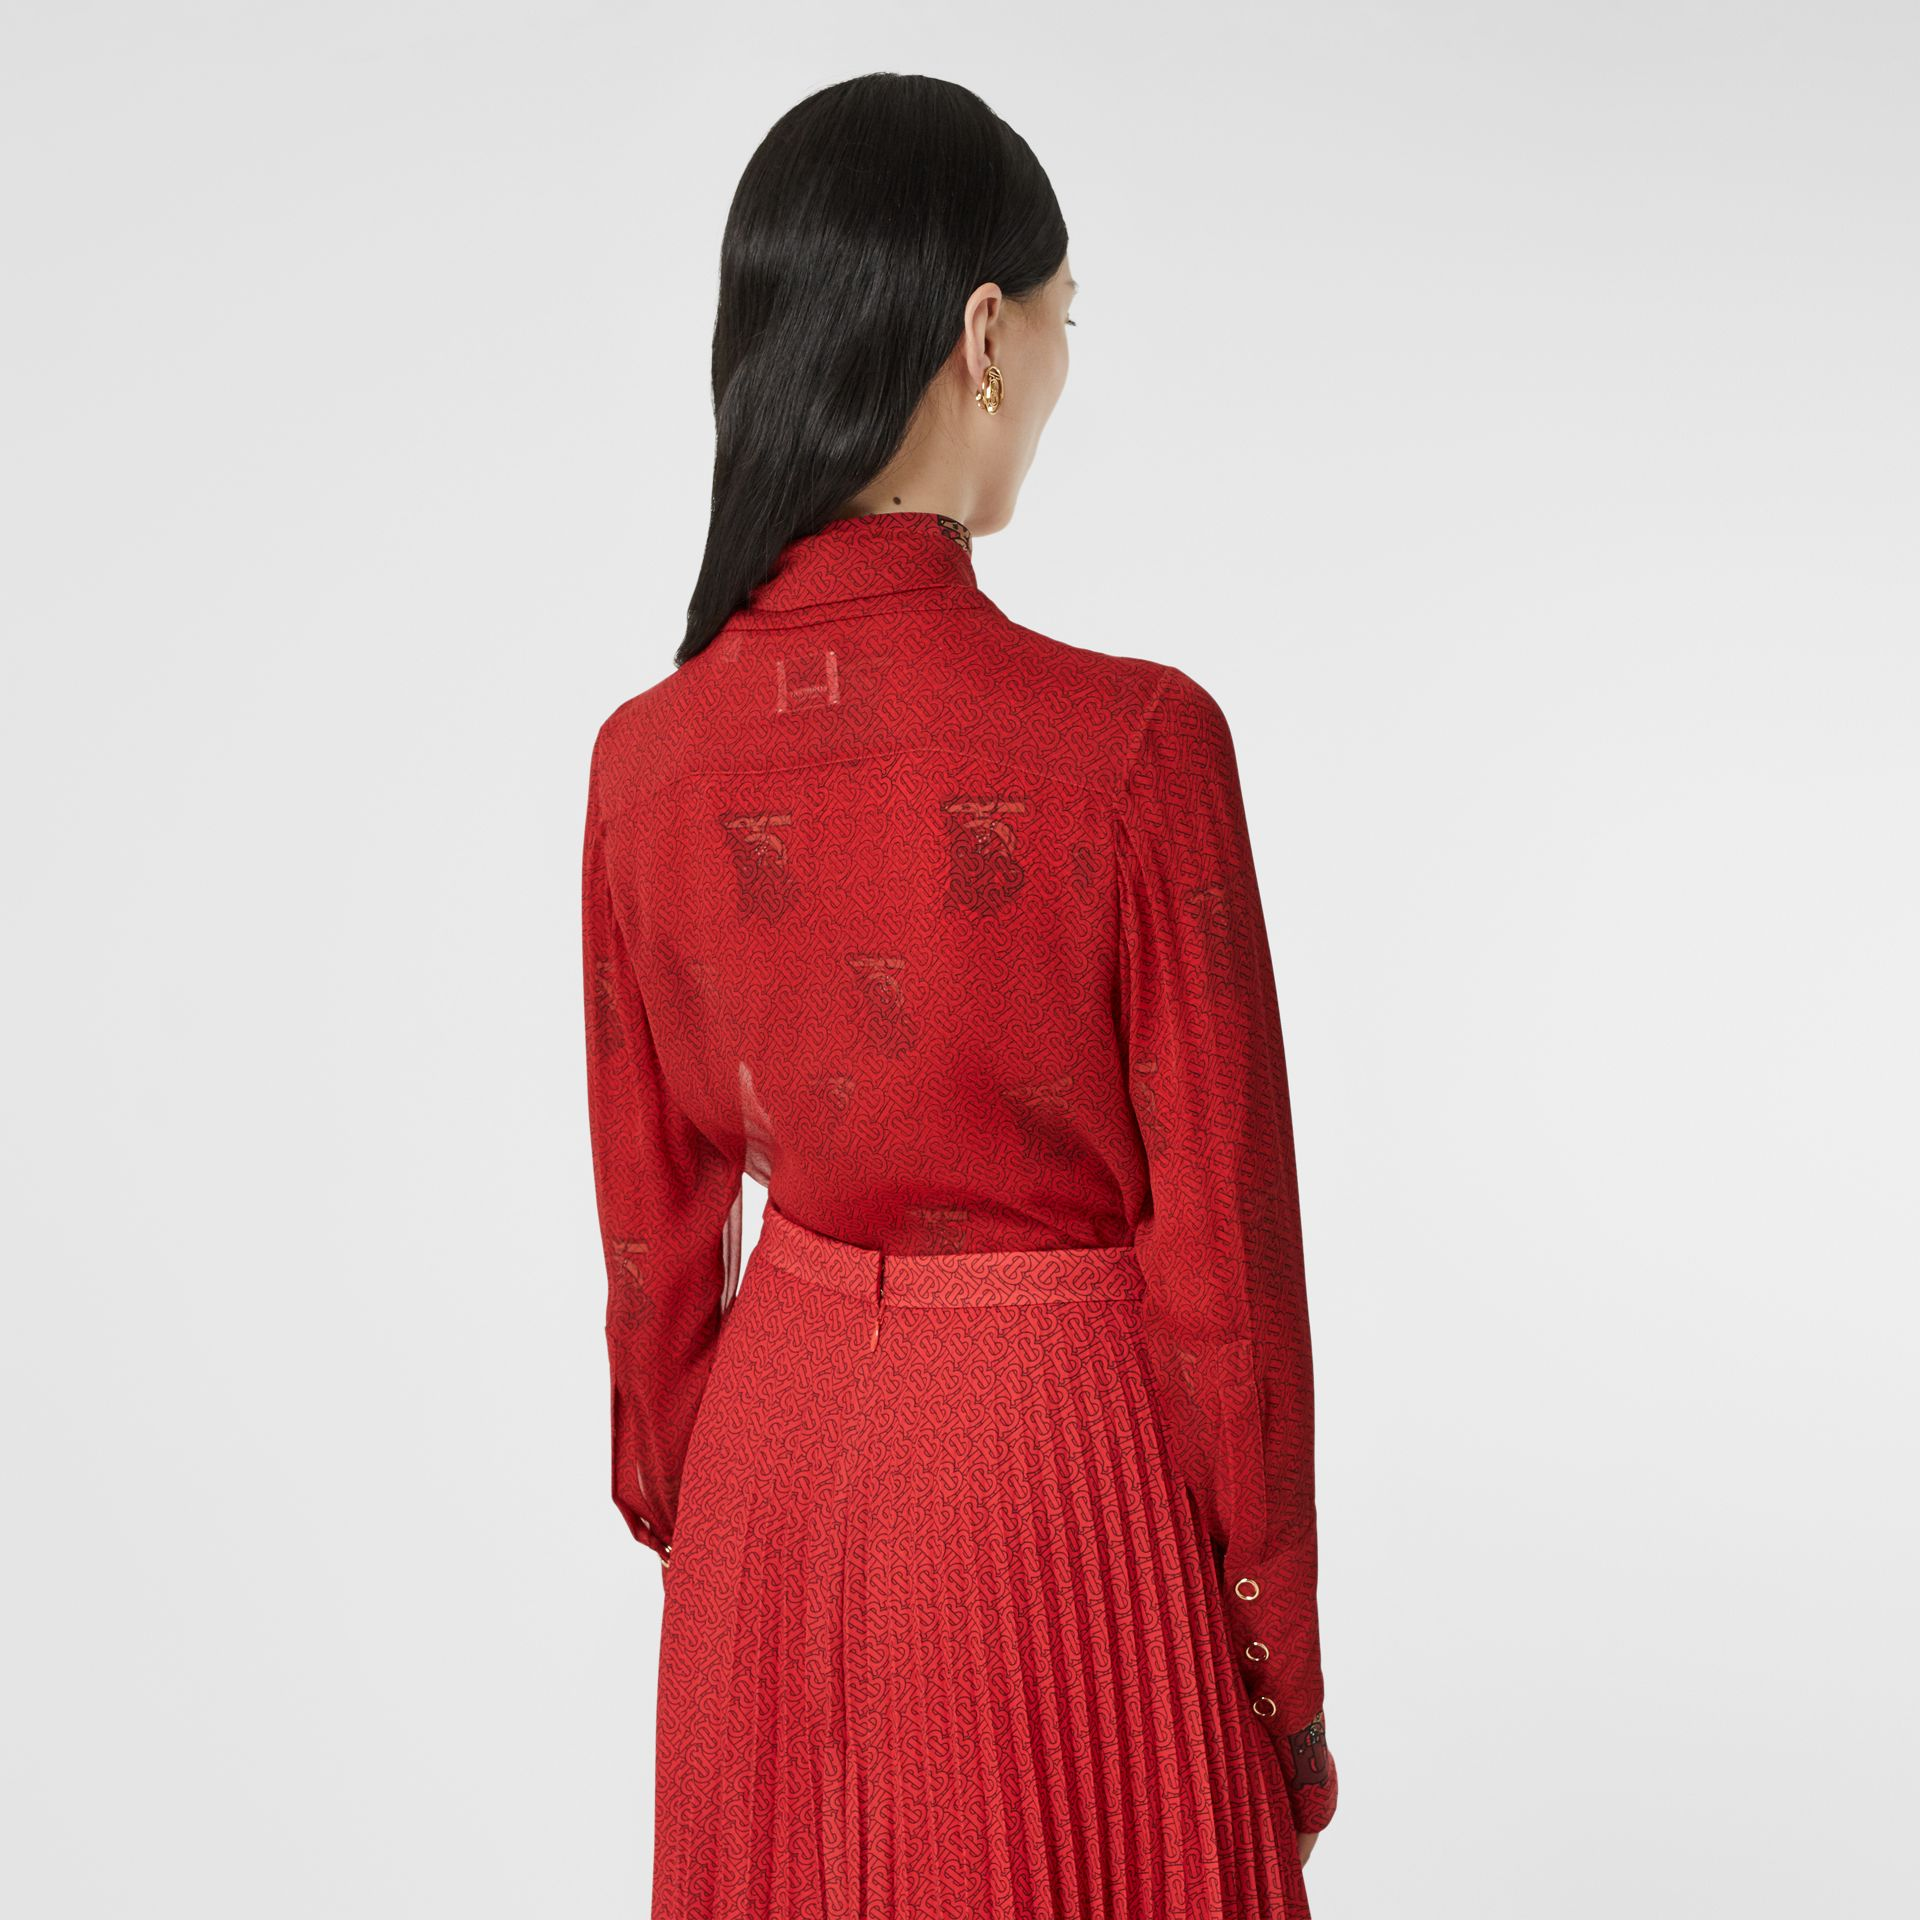 Monogram Print Silk Chiffon Pussy-bow Blouse in Bright Red - Women | Burberry Hong Kong S.A.R - gallery image 2